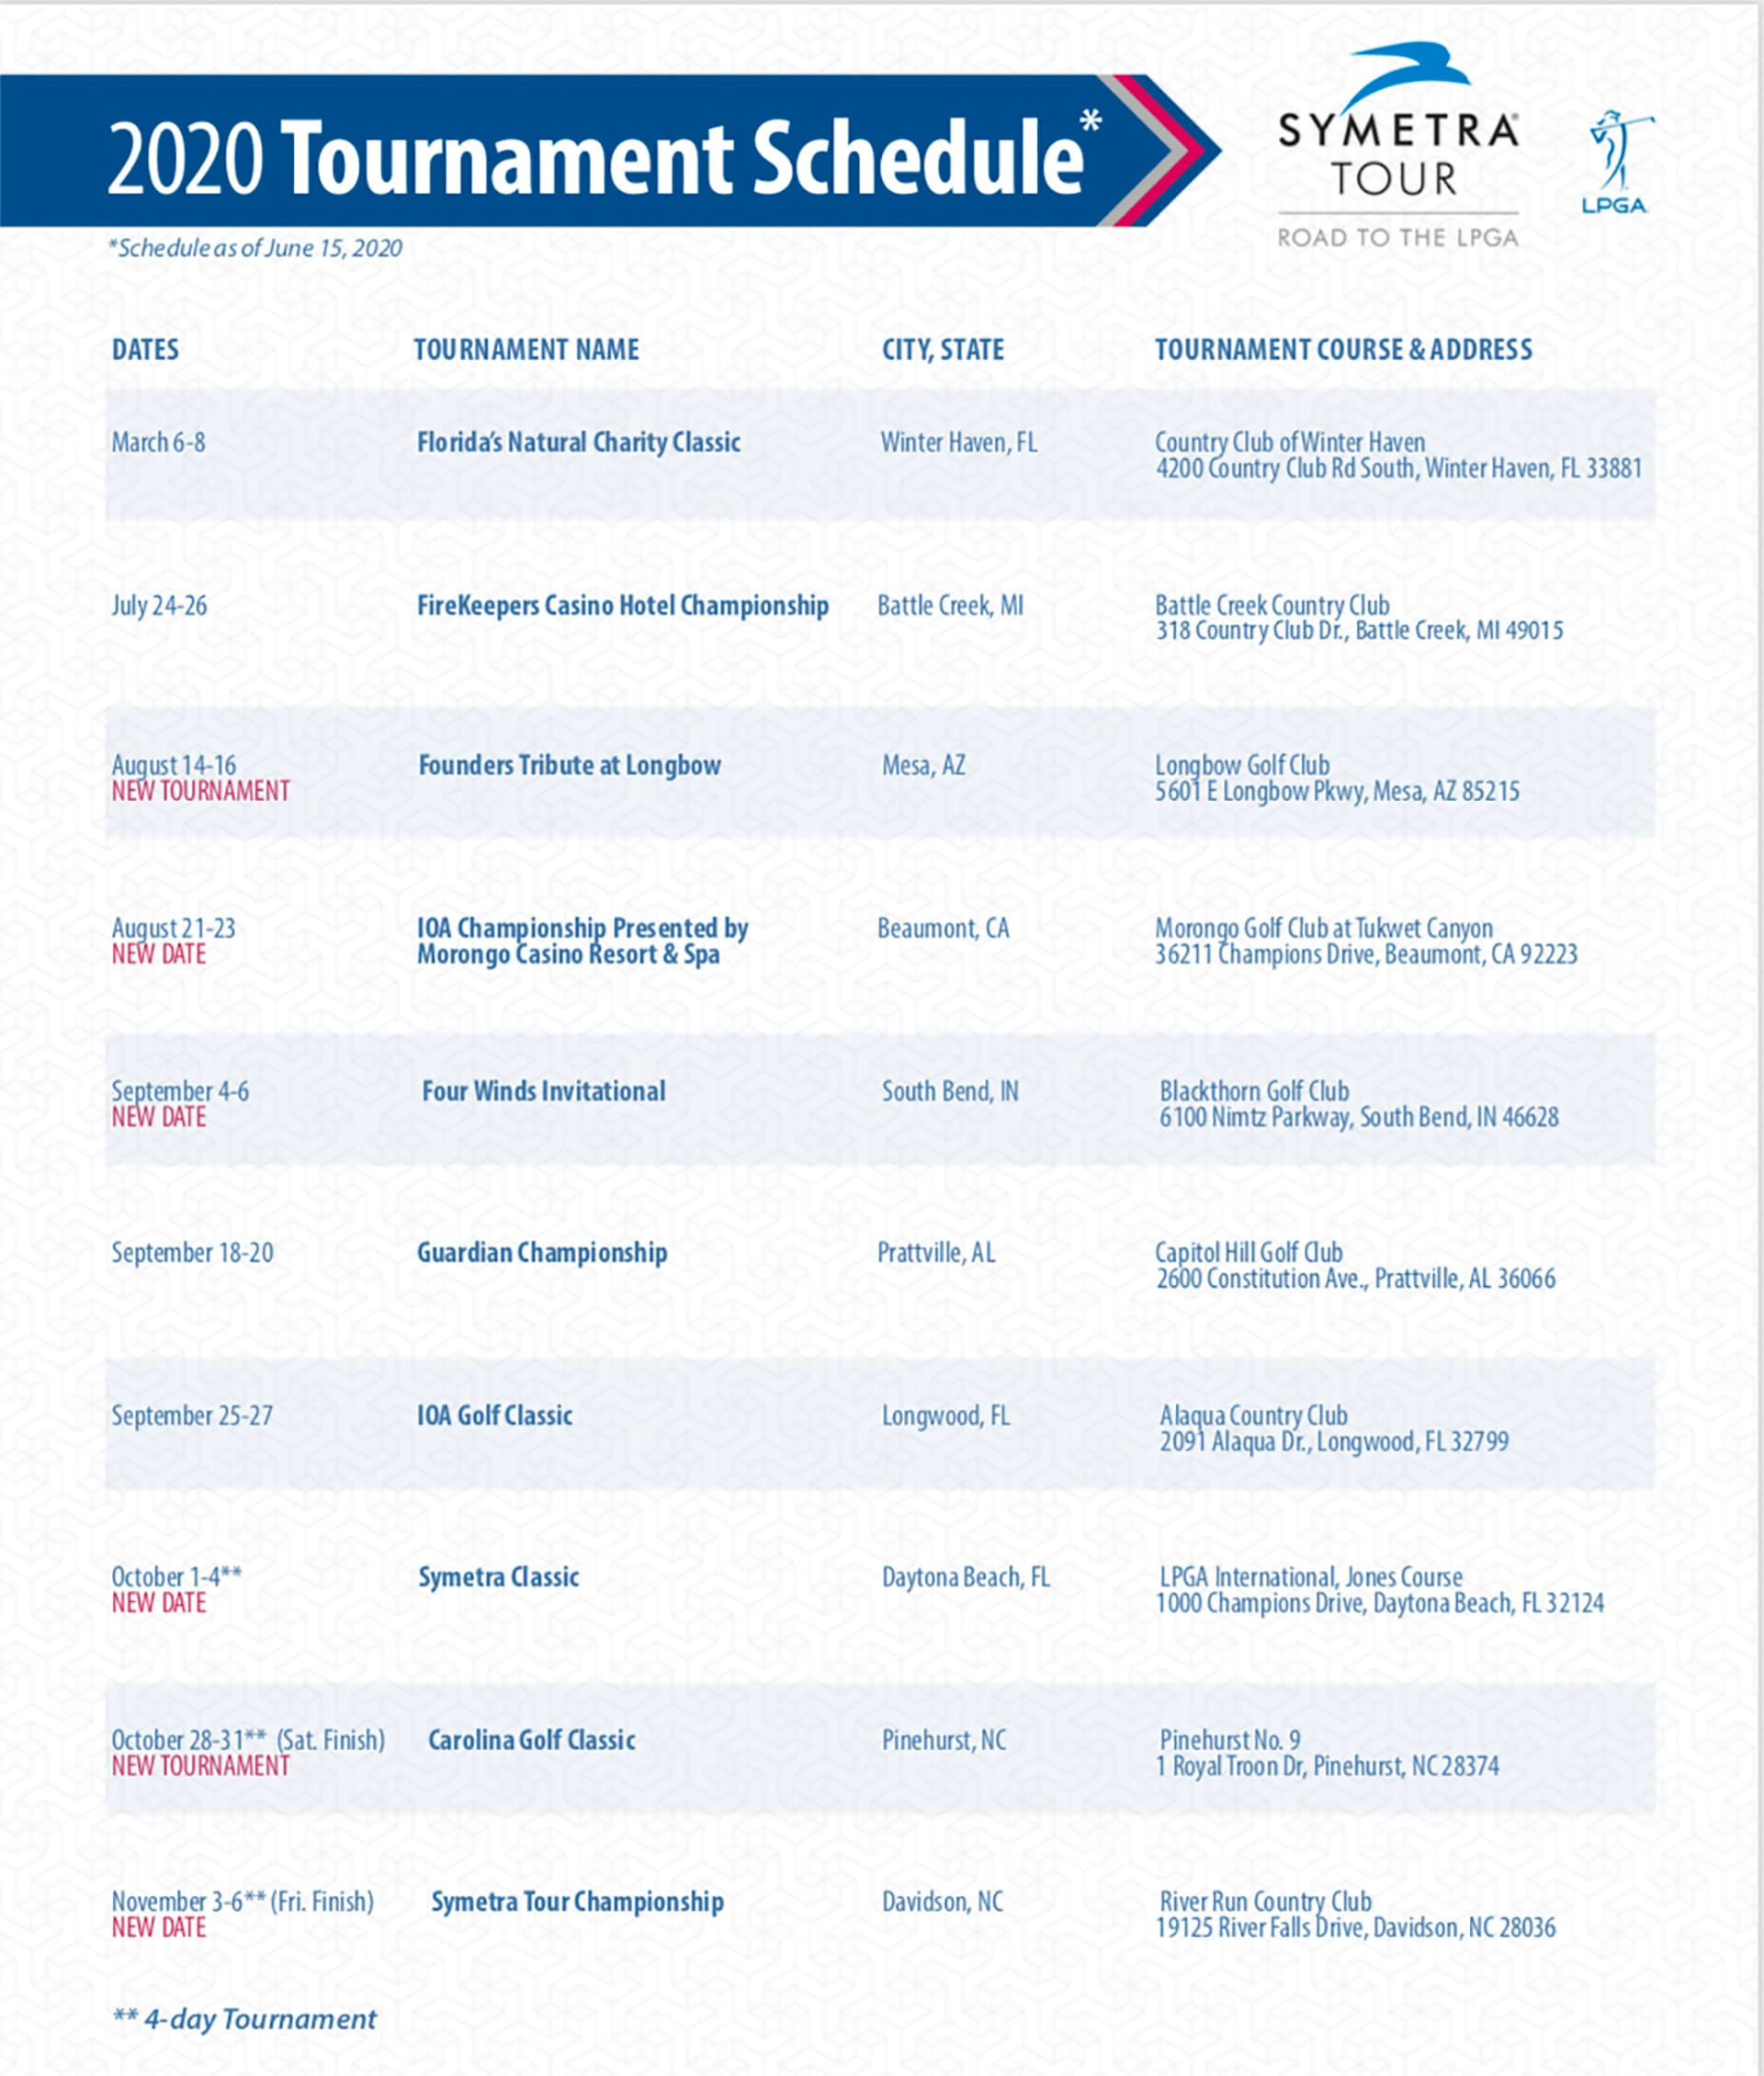 2020 revised Symetra Tour schedule